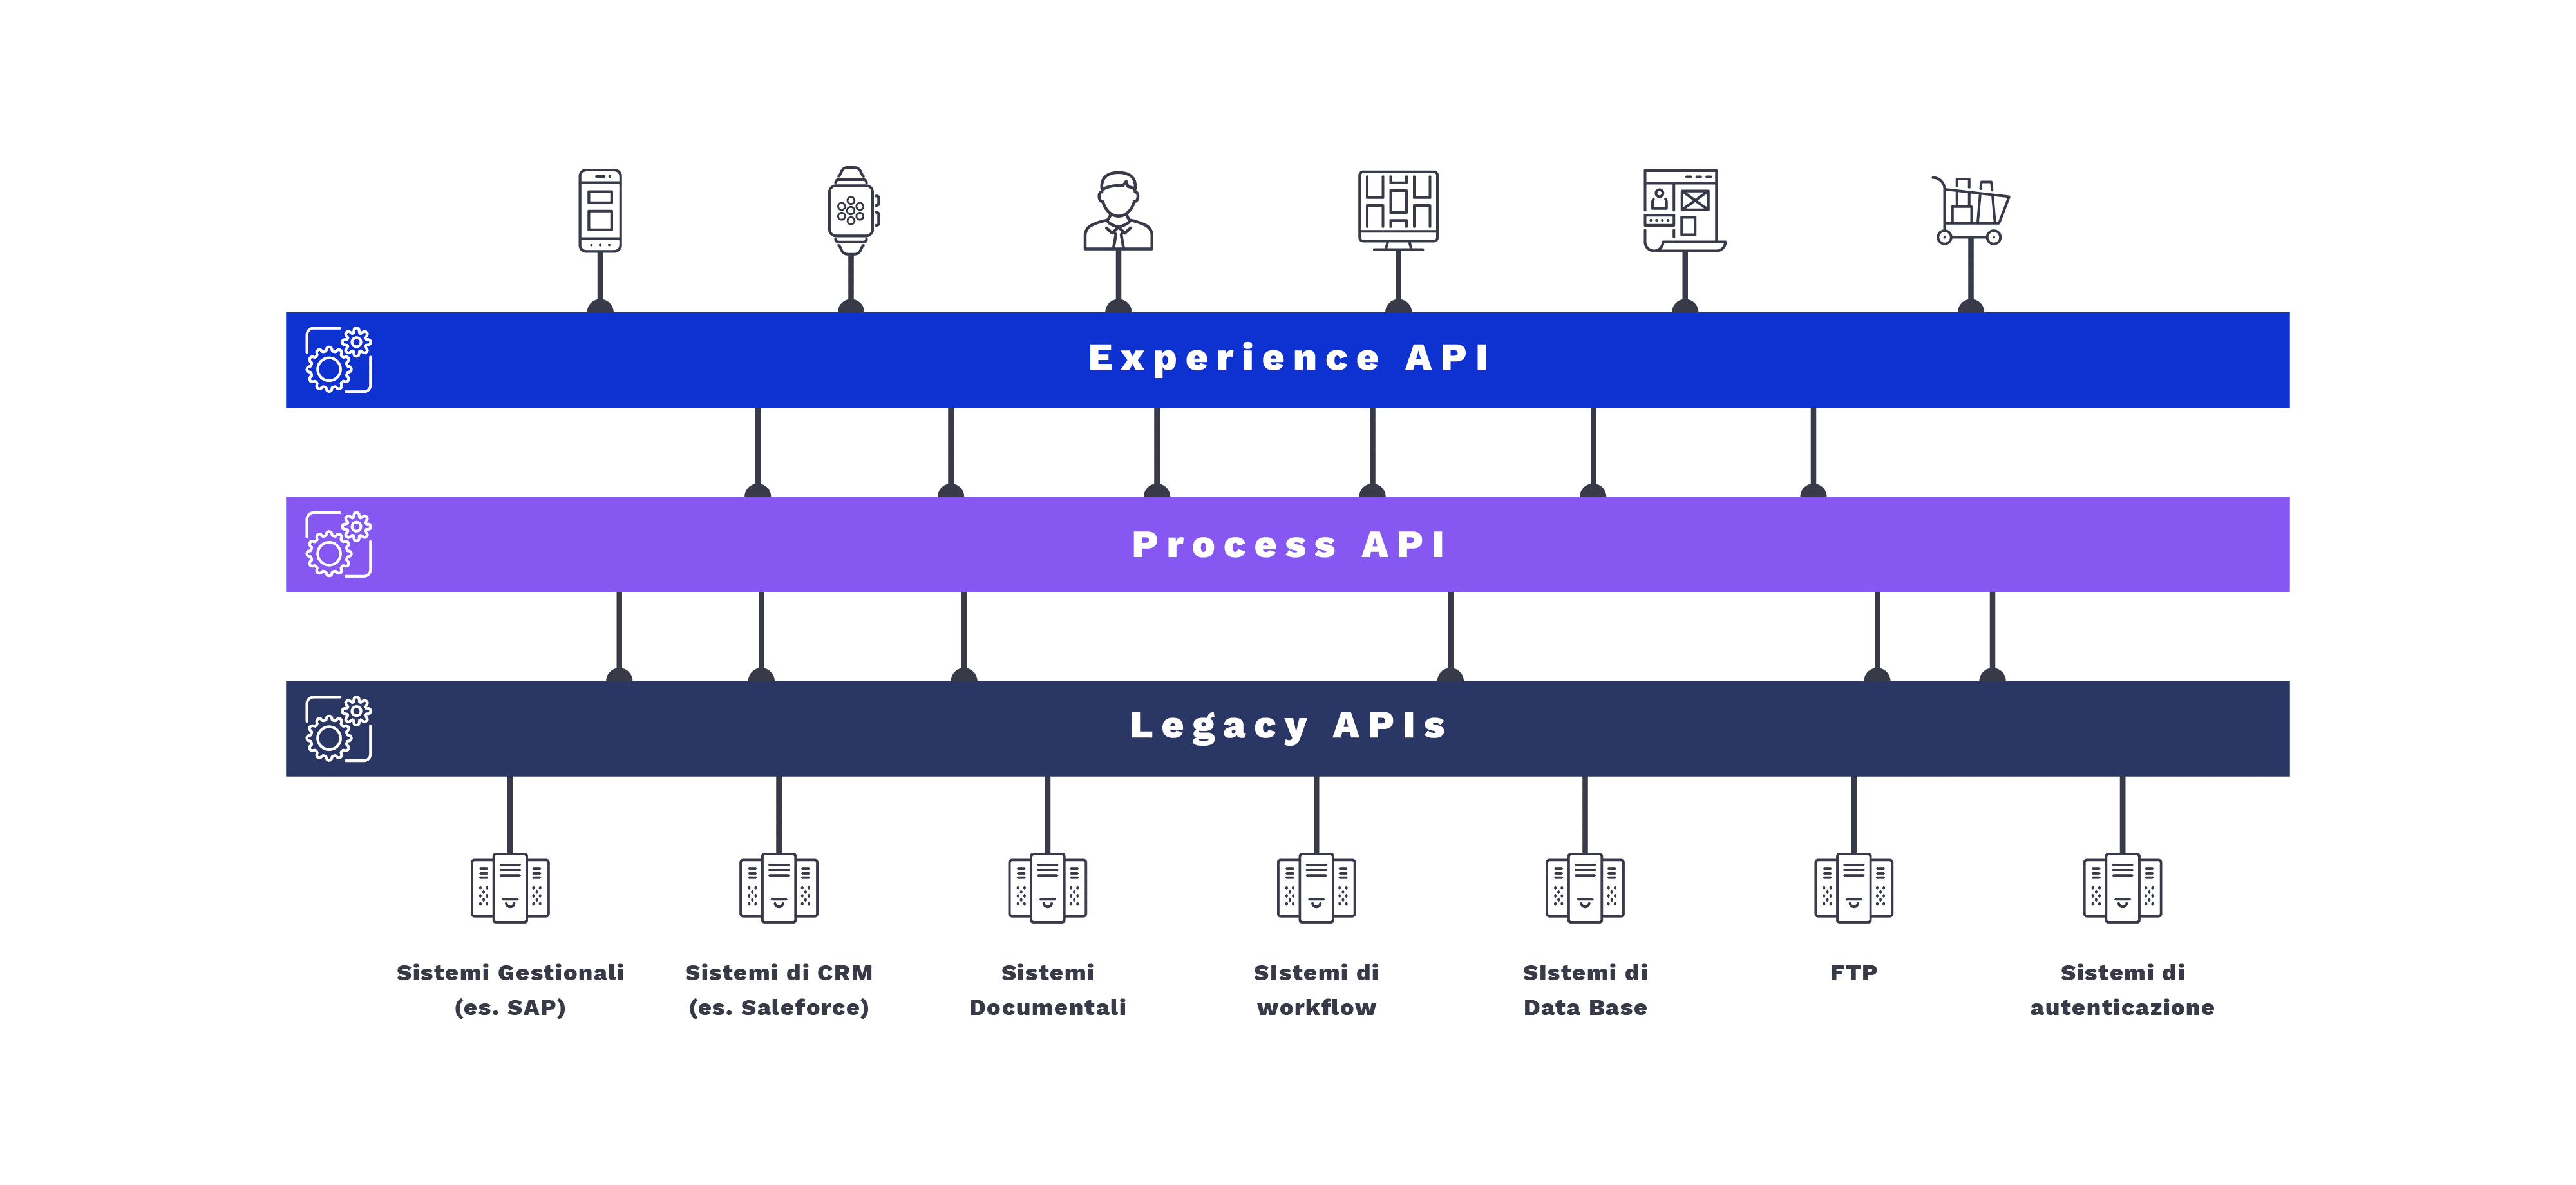 api architecture - headless & api date 2019